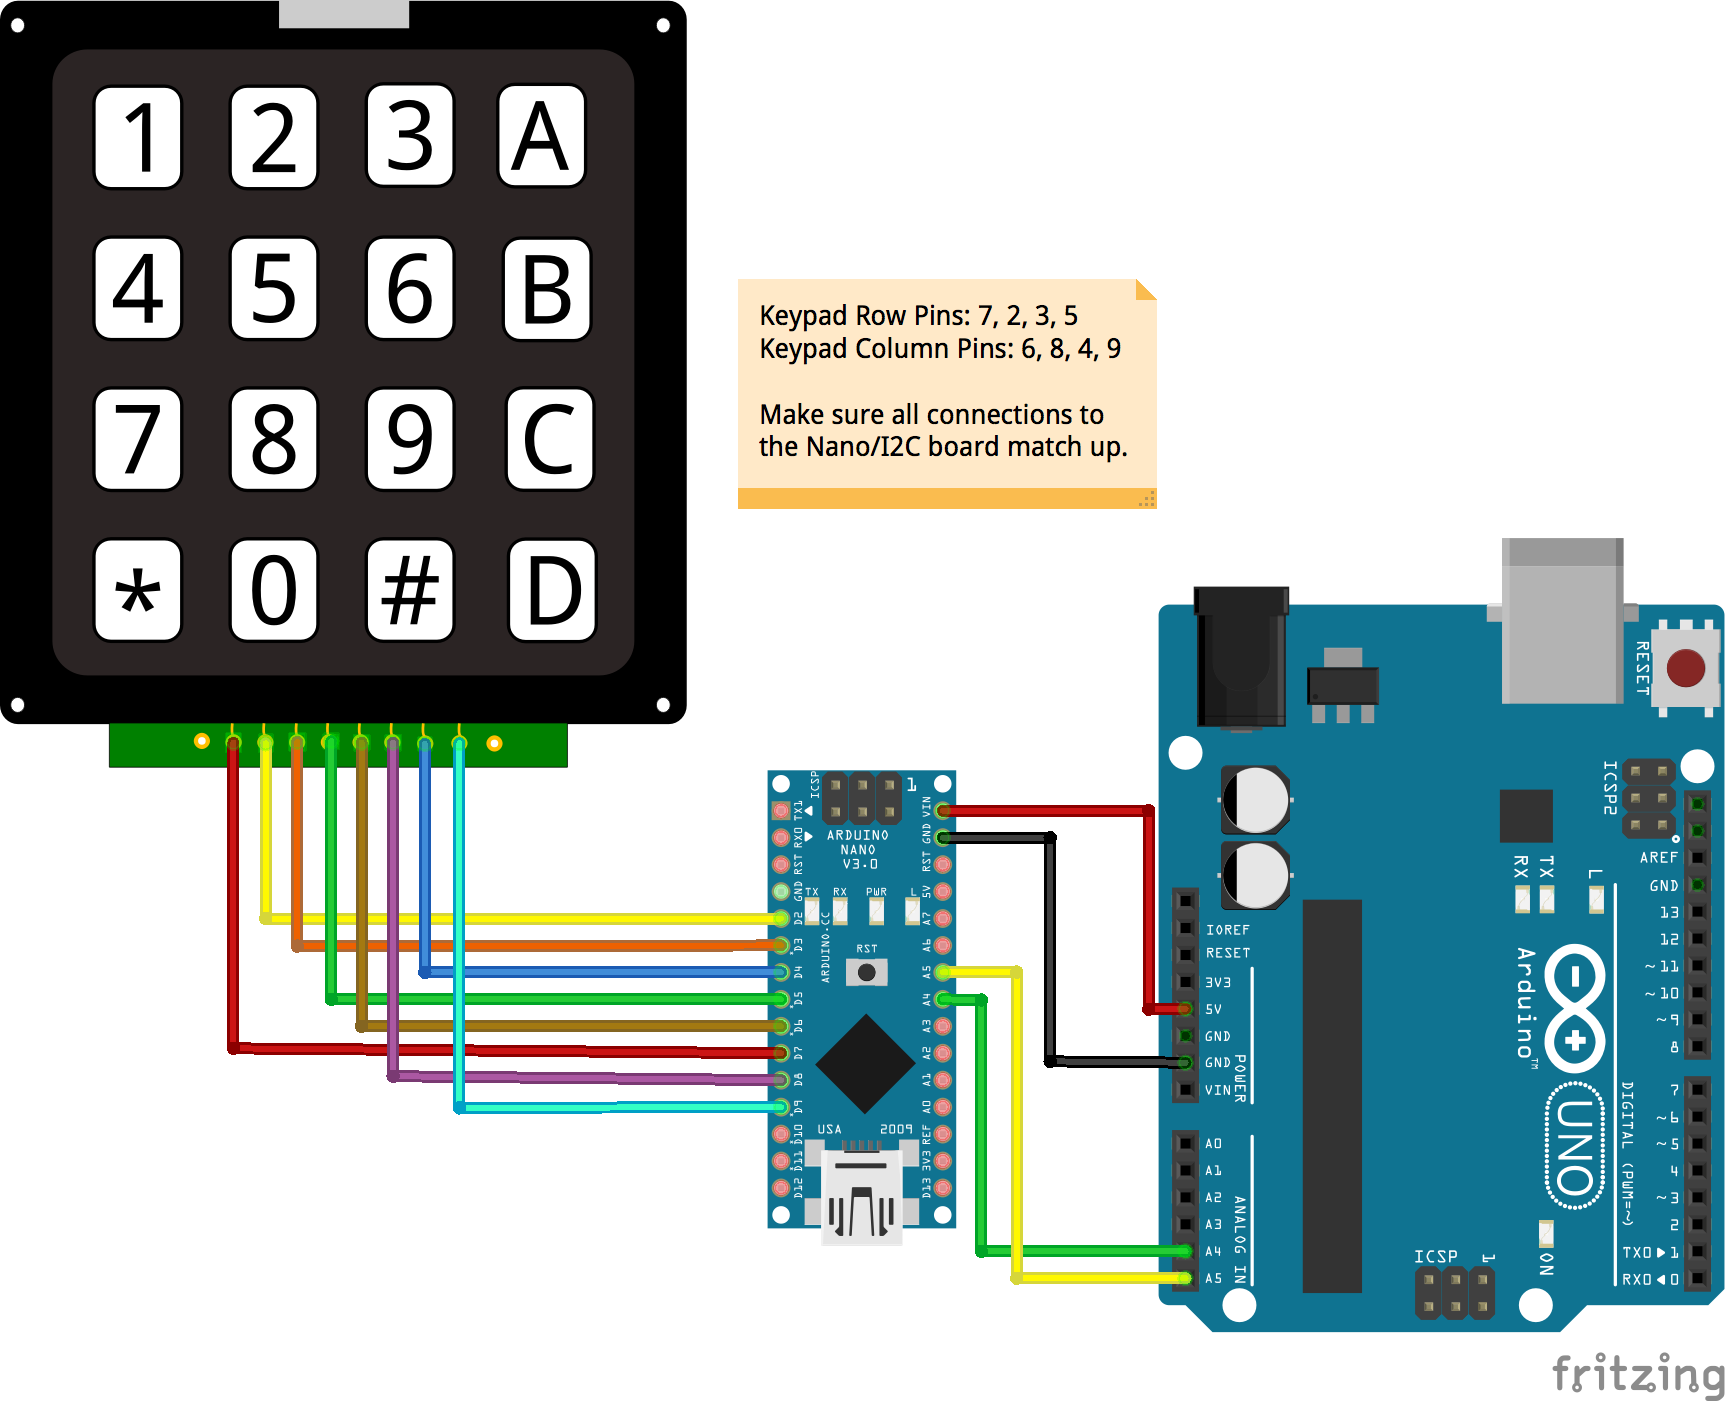 JavaScript Robotics: Keypad - 4x4 I2C Nano Backpack with Johnny-Five